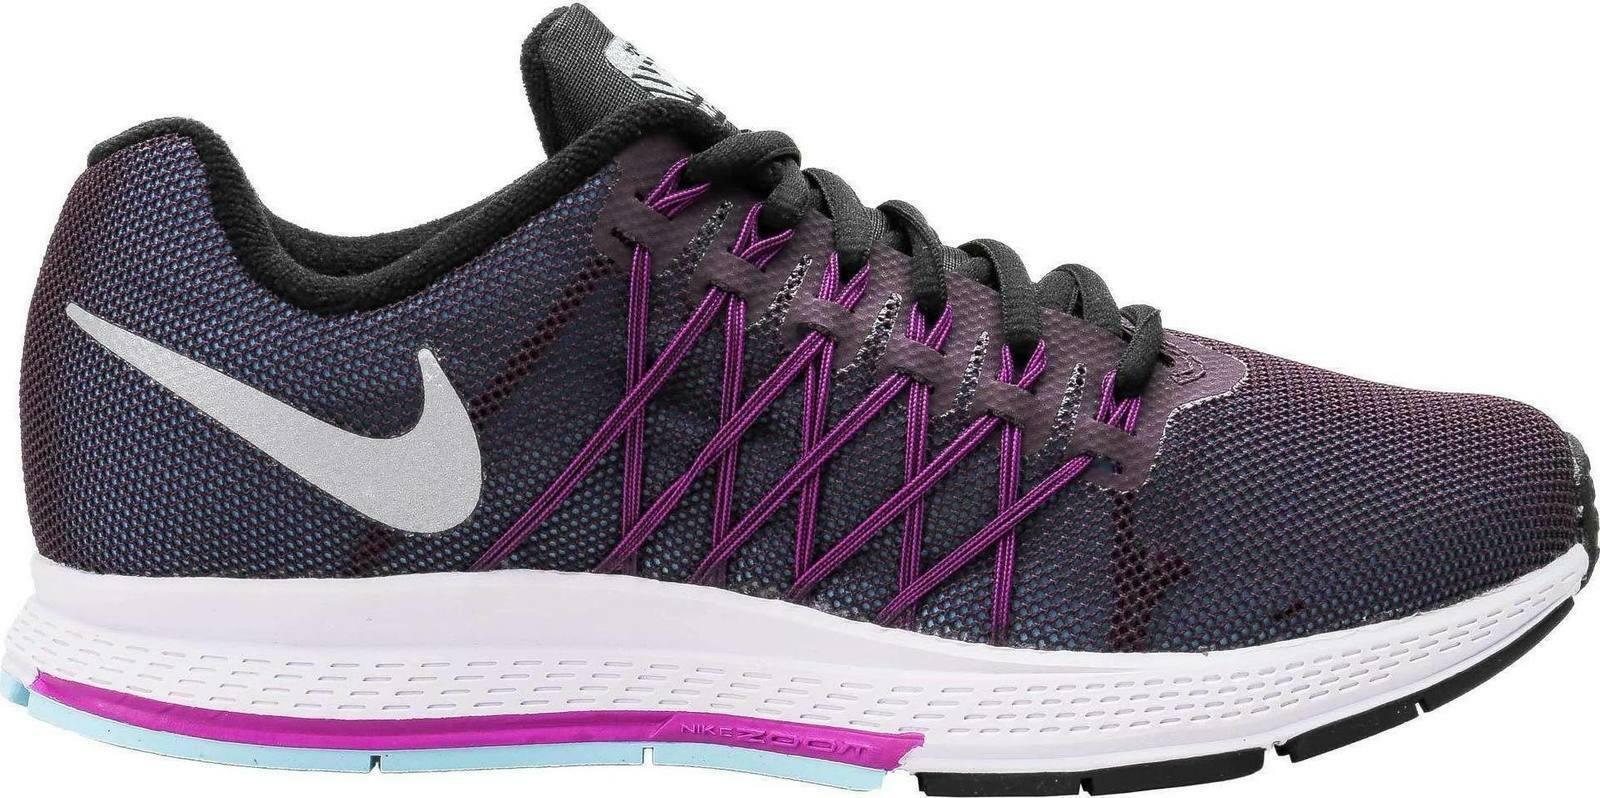 speical offer shopping available Womens Nike Air Zoom Pegasus 32 Flash Purple Running Trainers 806577 500